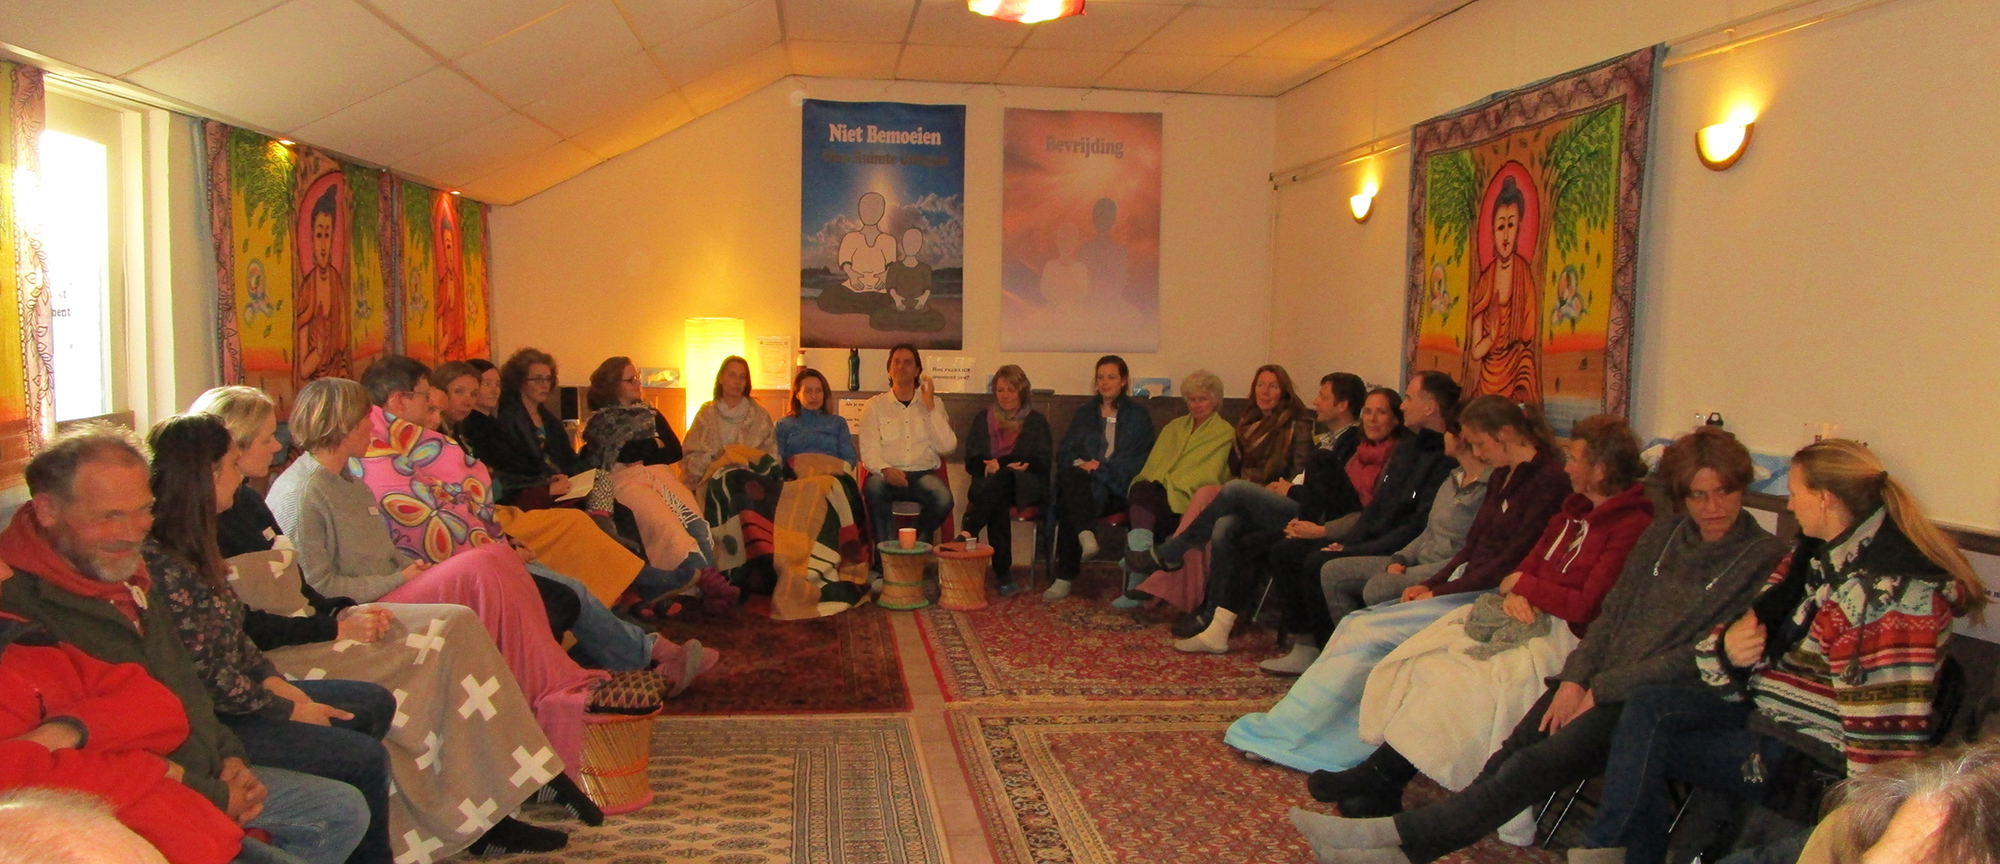 Meditatieve opening workshop